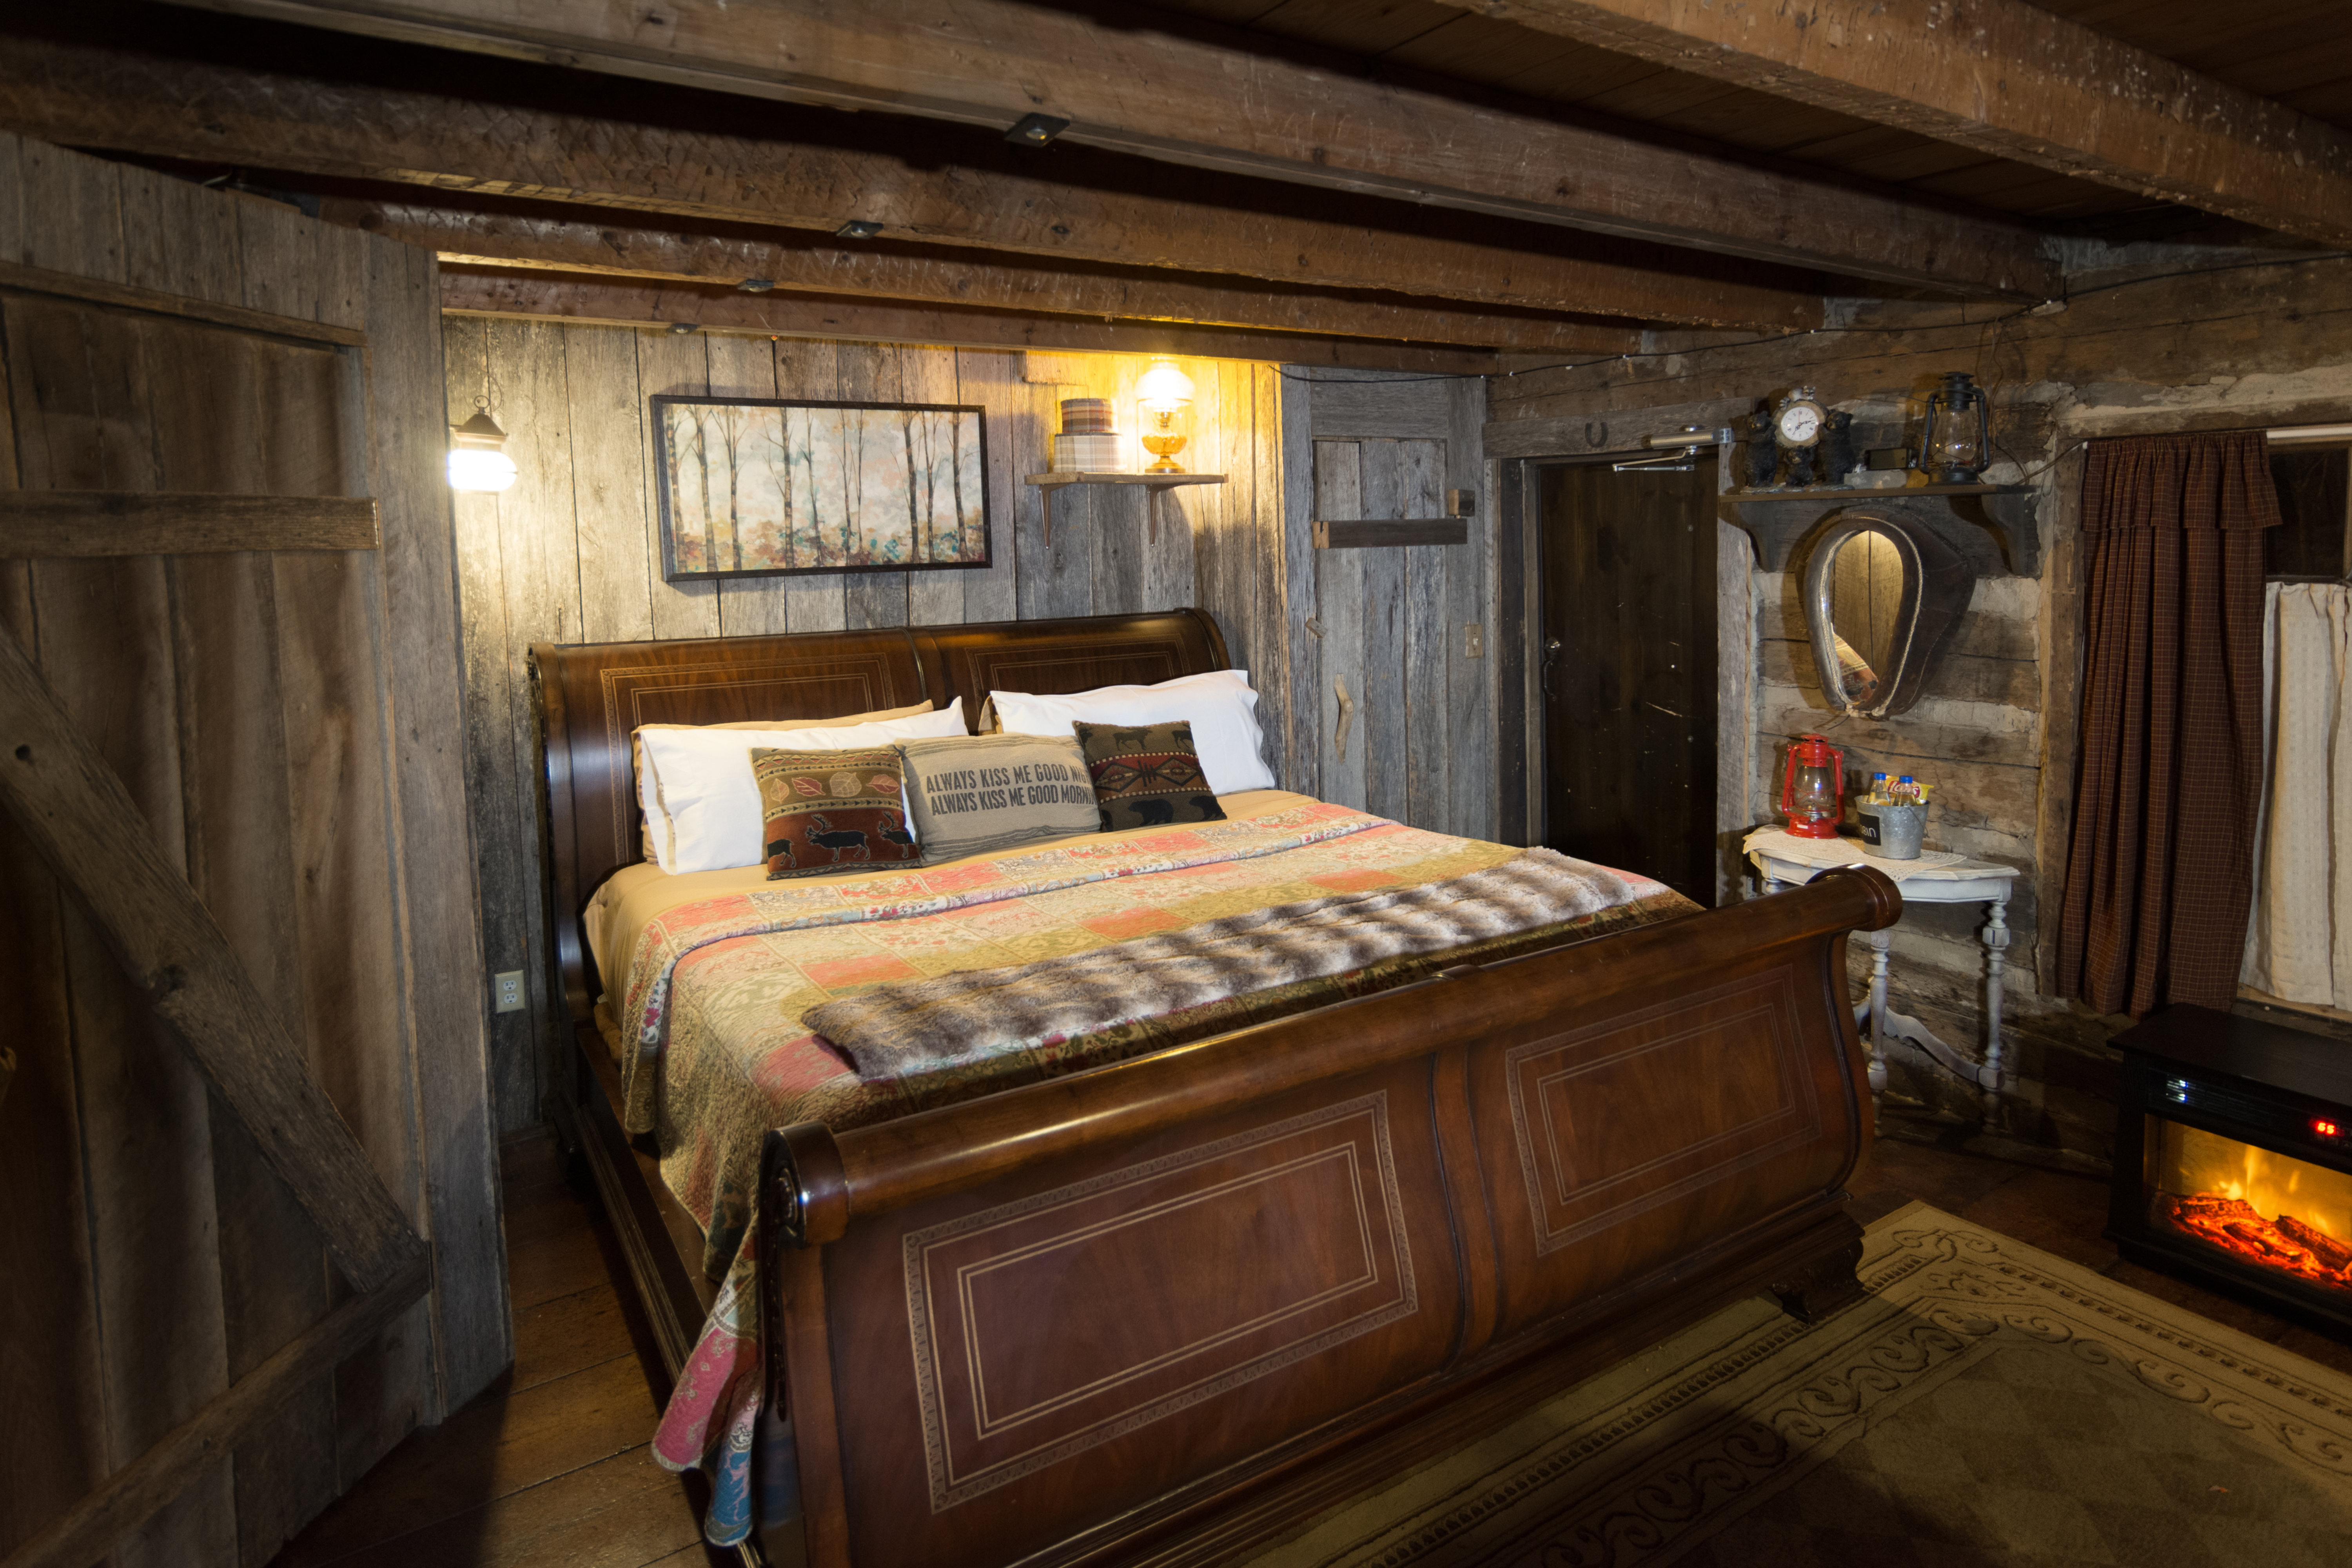 A bedroom with a bed and a fireplace at The Olde Mill Inn Bed & Breakfast.